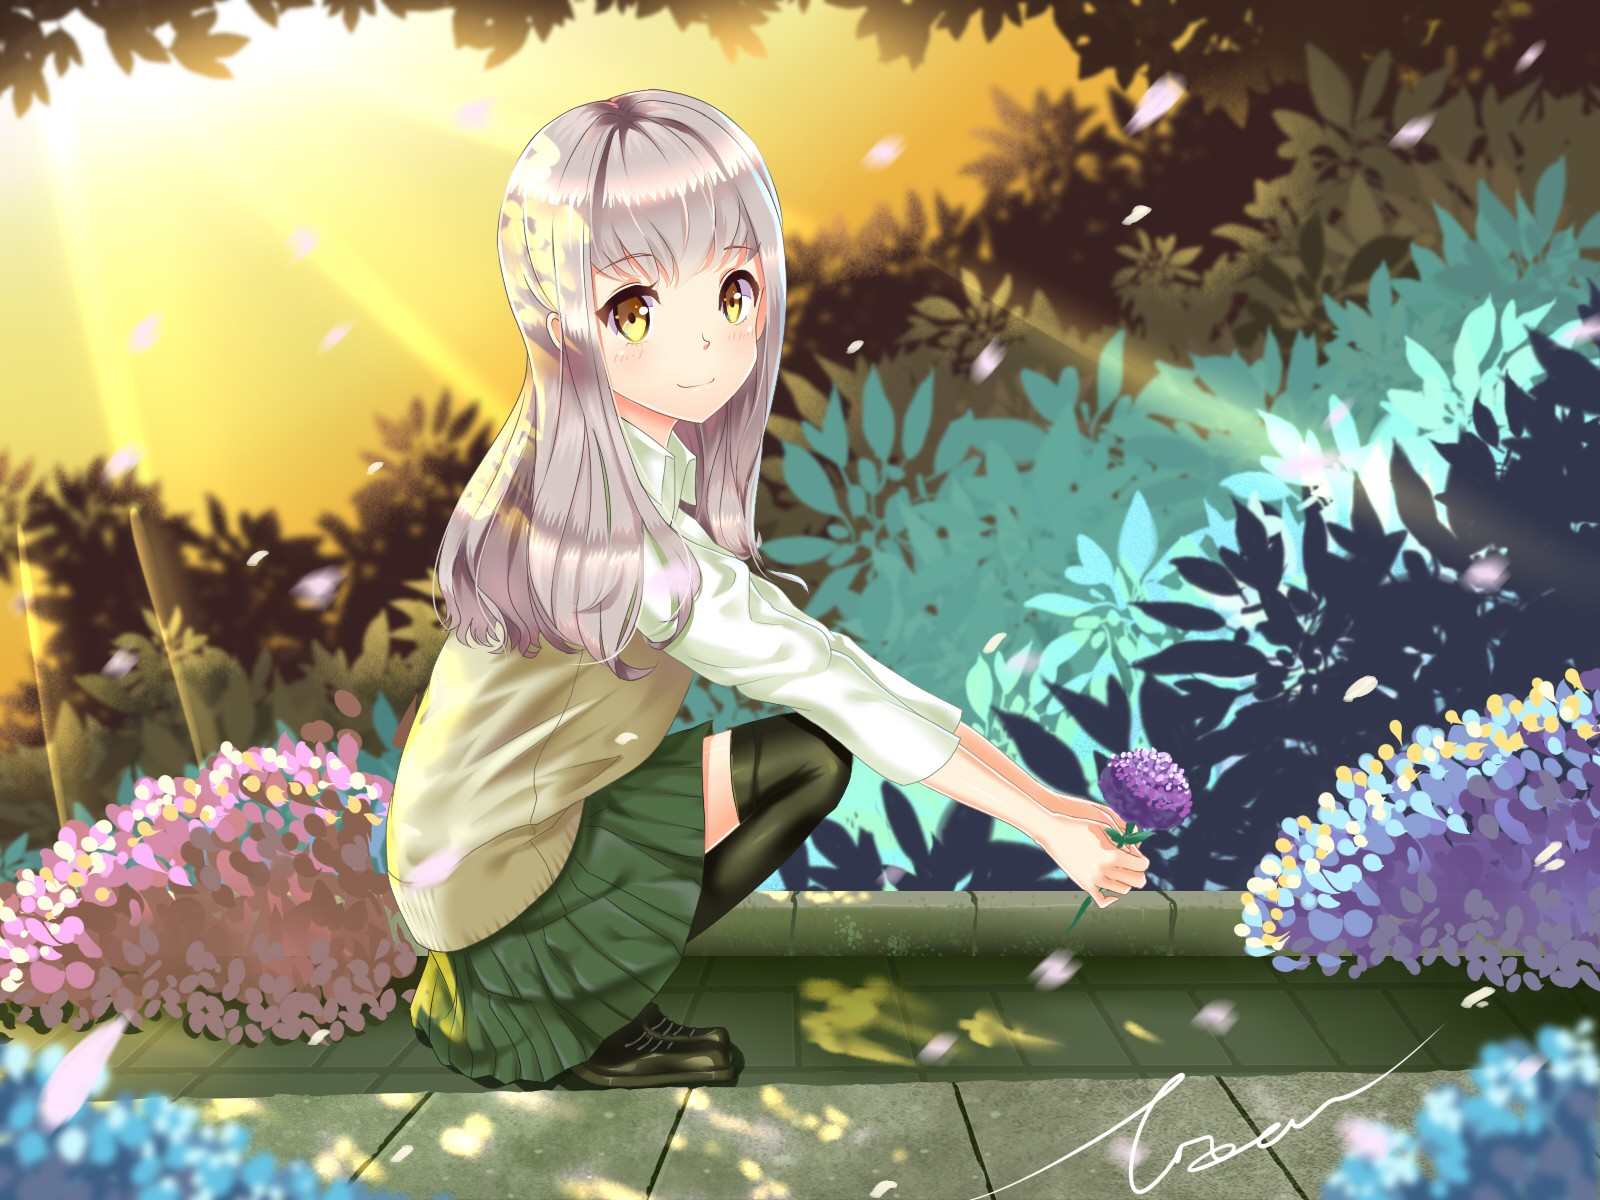 Anime Characters Yellow Eyes : Flowers skirts thigh highs yellow eyes gray hair anime